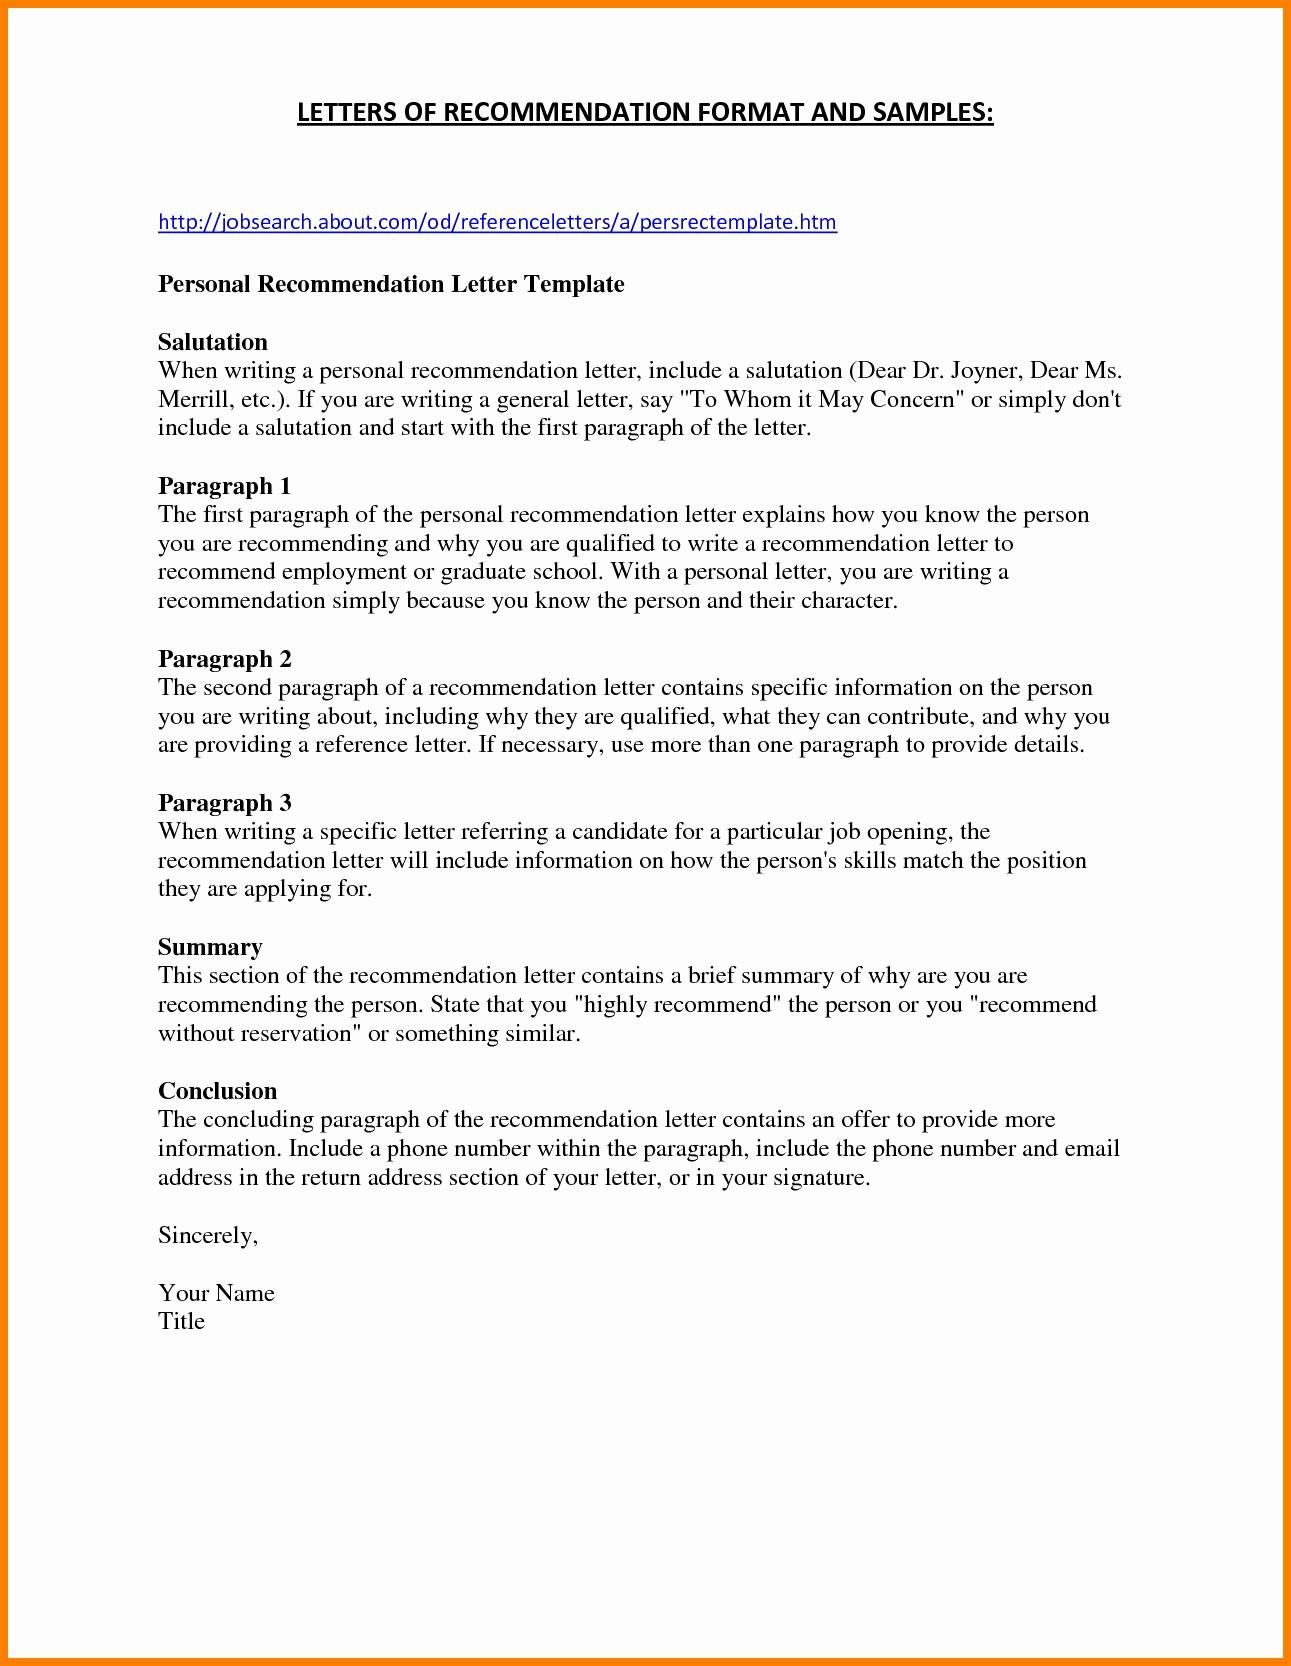 Social Worker Cover Letter Template - Cover Letter for A social Worker Awesome social Work Cover Letter